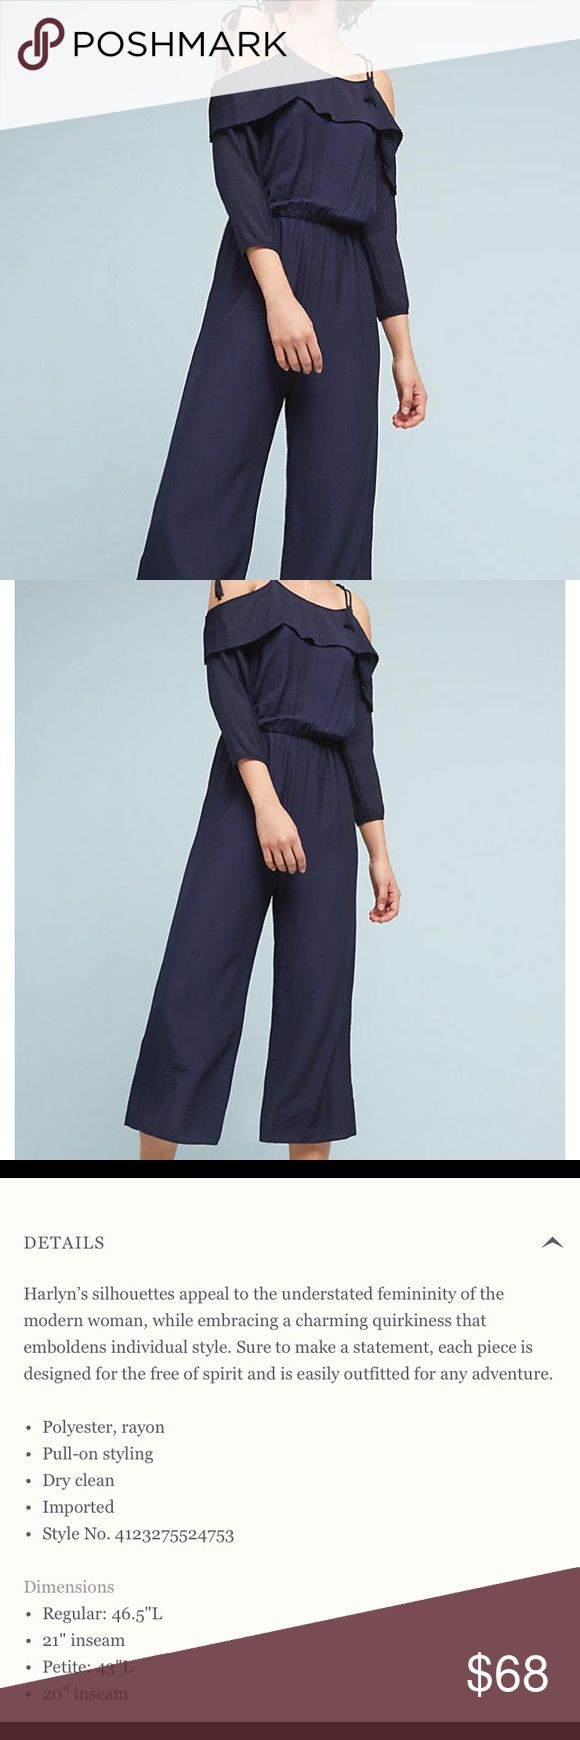 ANTHRO Open Shoulder Jumpsuit by Harlyn Gorgeous feminine piece!Pleated neckline details and sleeves. Navy/Marine color. New with tags Anthropologie Pants Jumpsuits & Rompers